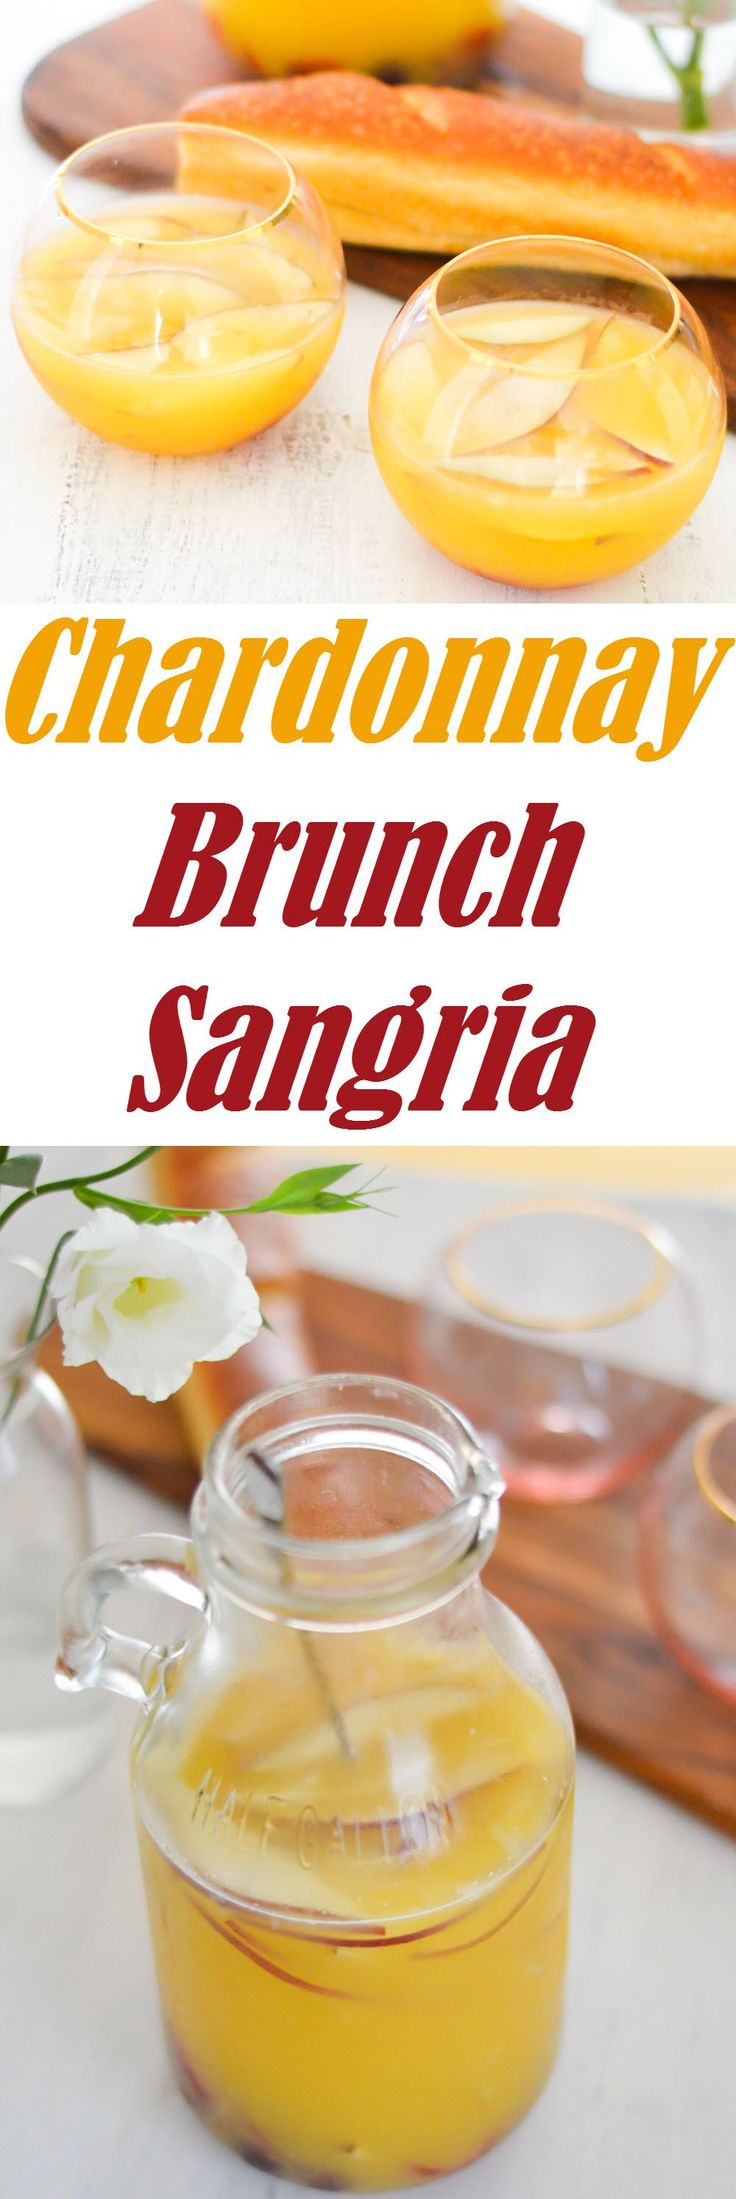 Delicious Sangria for Breakfast or Brunch. Made with Chardonnay, this white wine sangria is perfect for entertaining your friends! Premium wines delivered to your door.  Get in. Get wine. Get social.